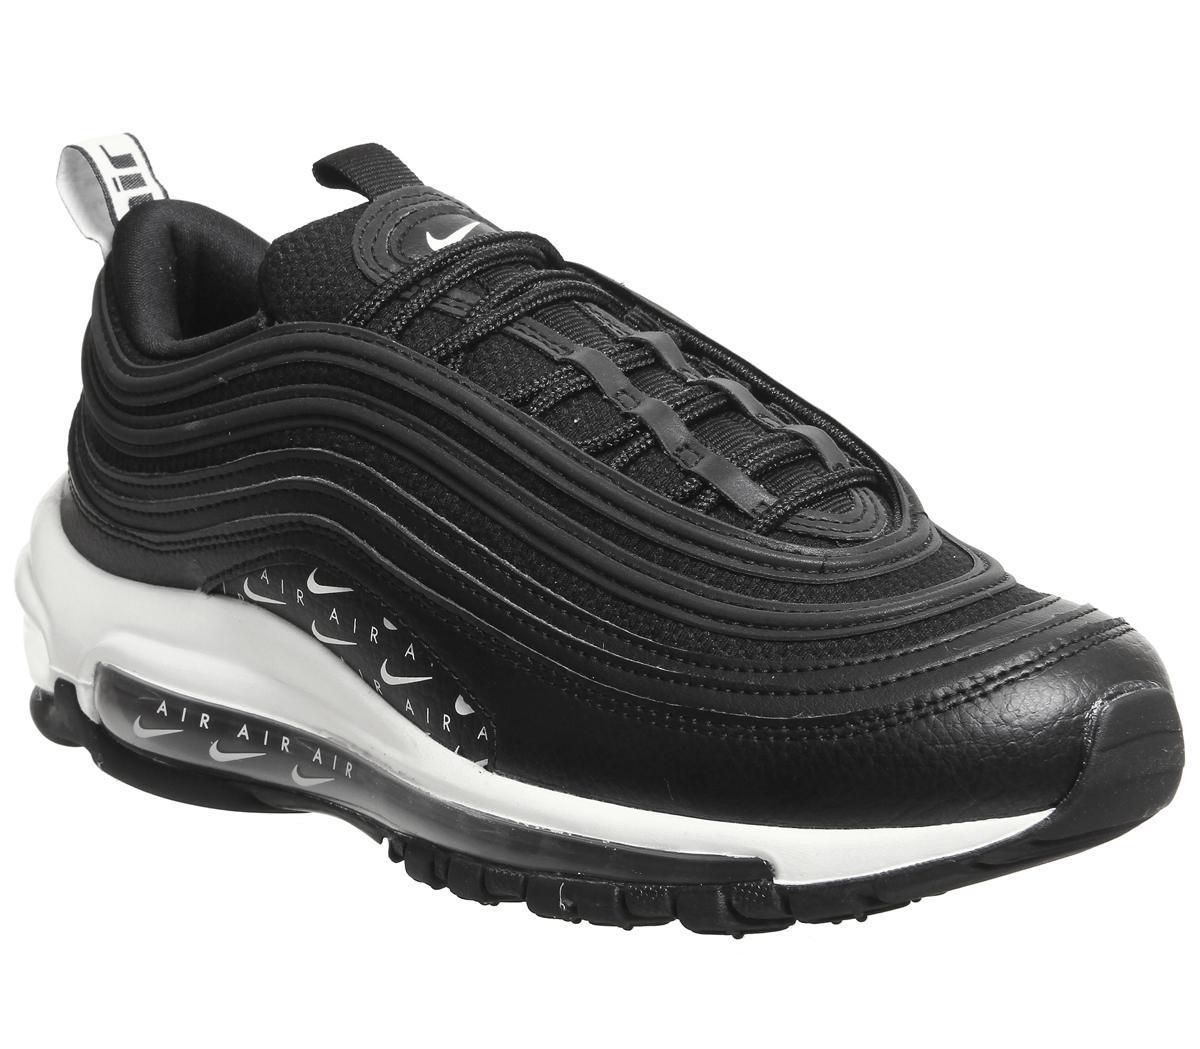 97s white and black